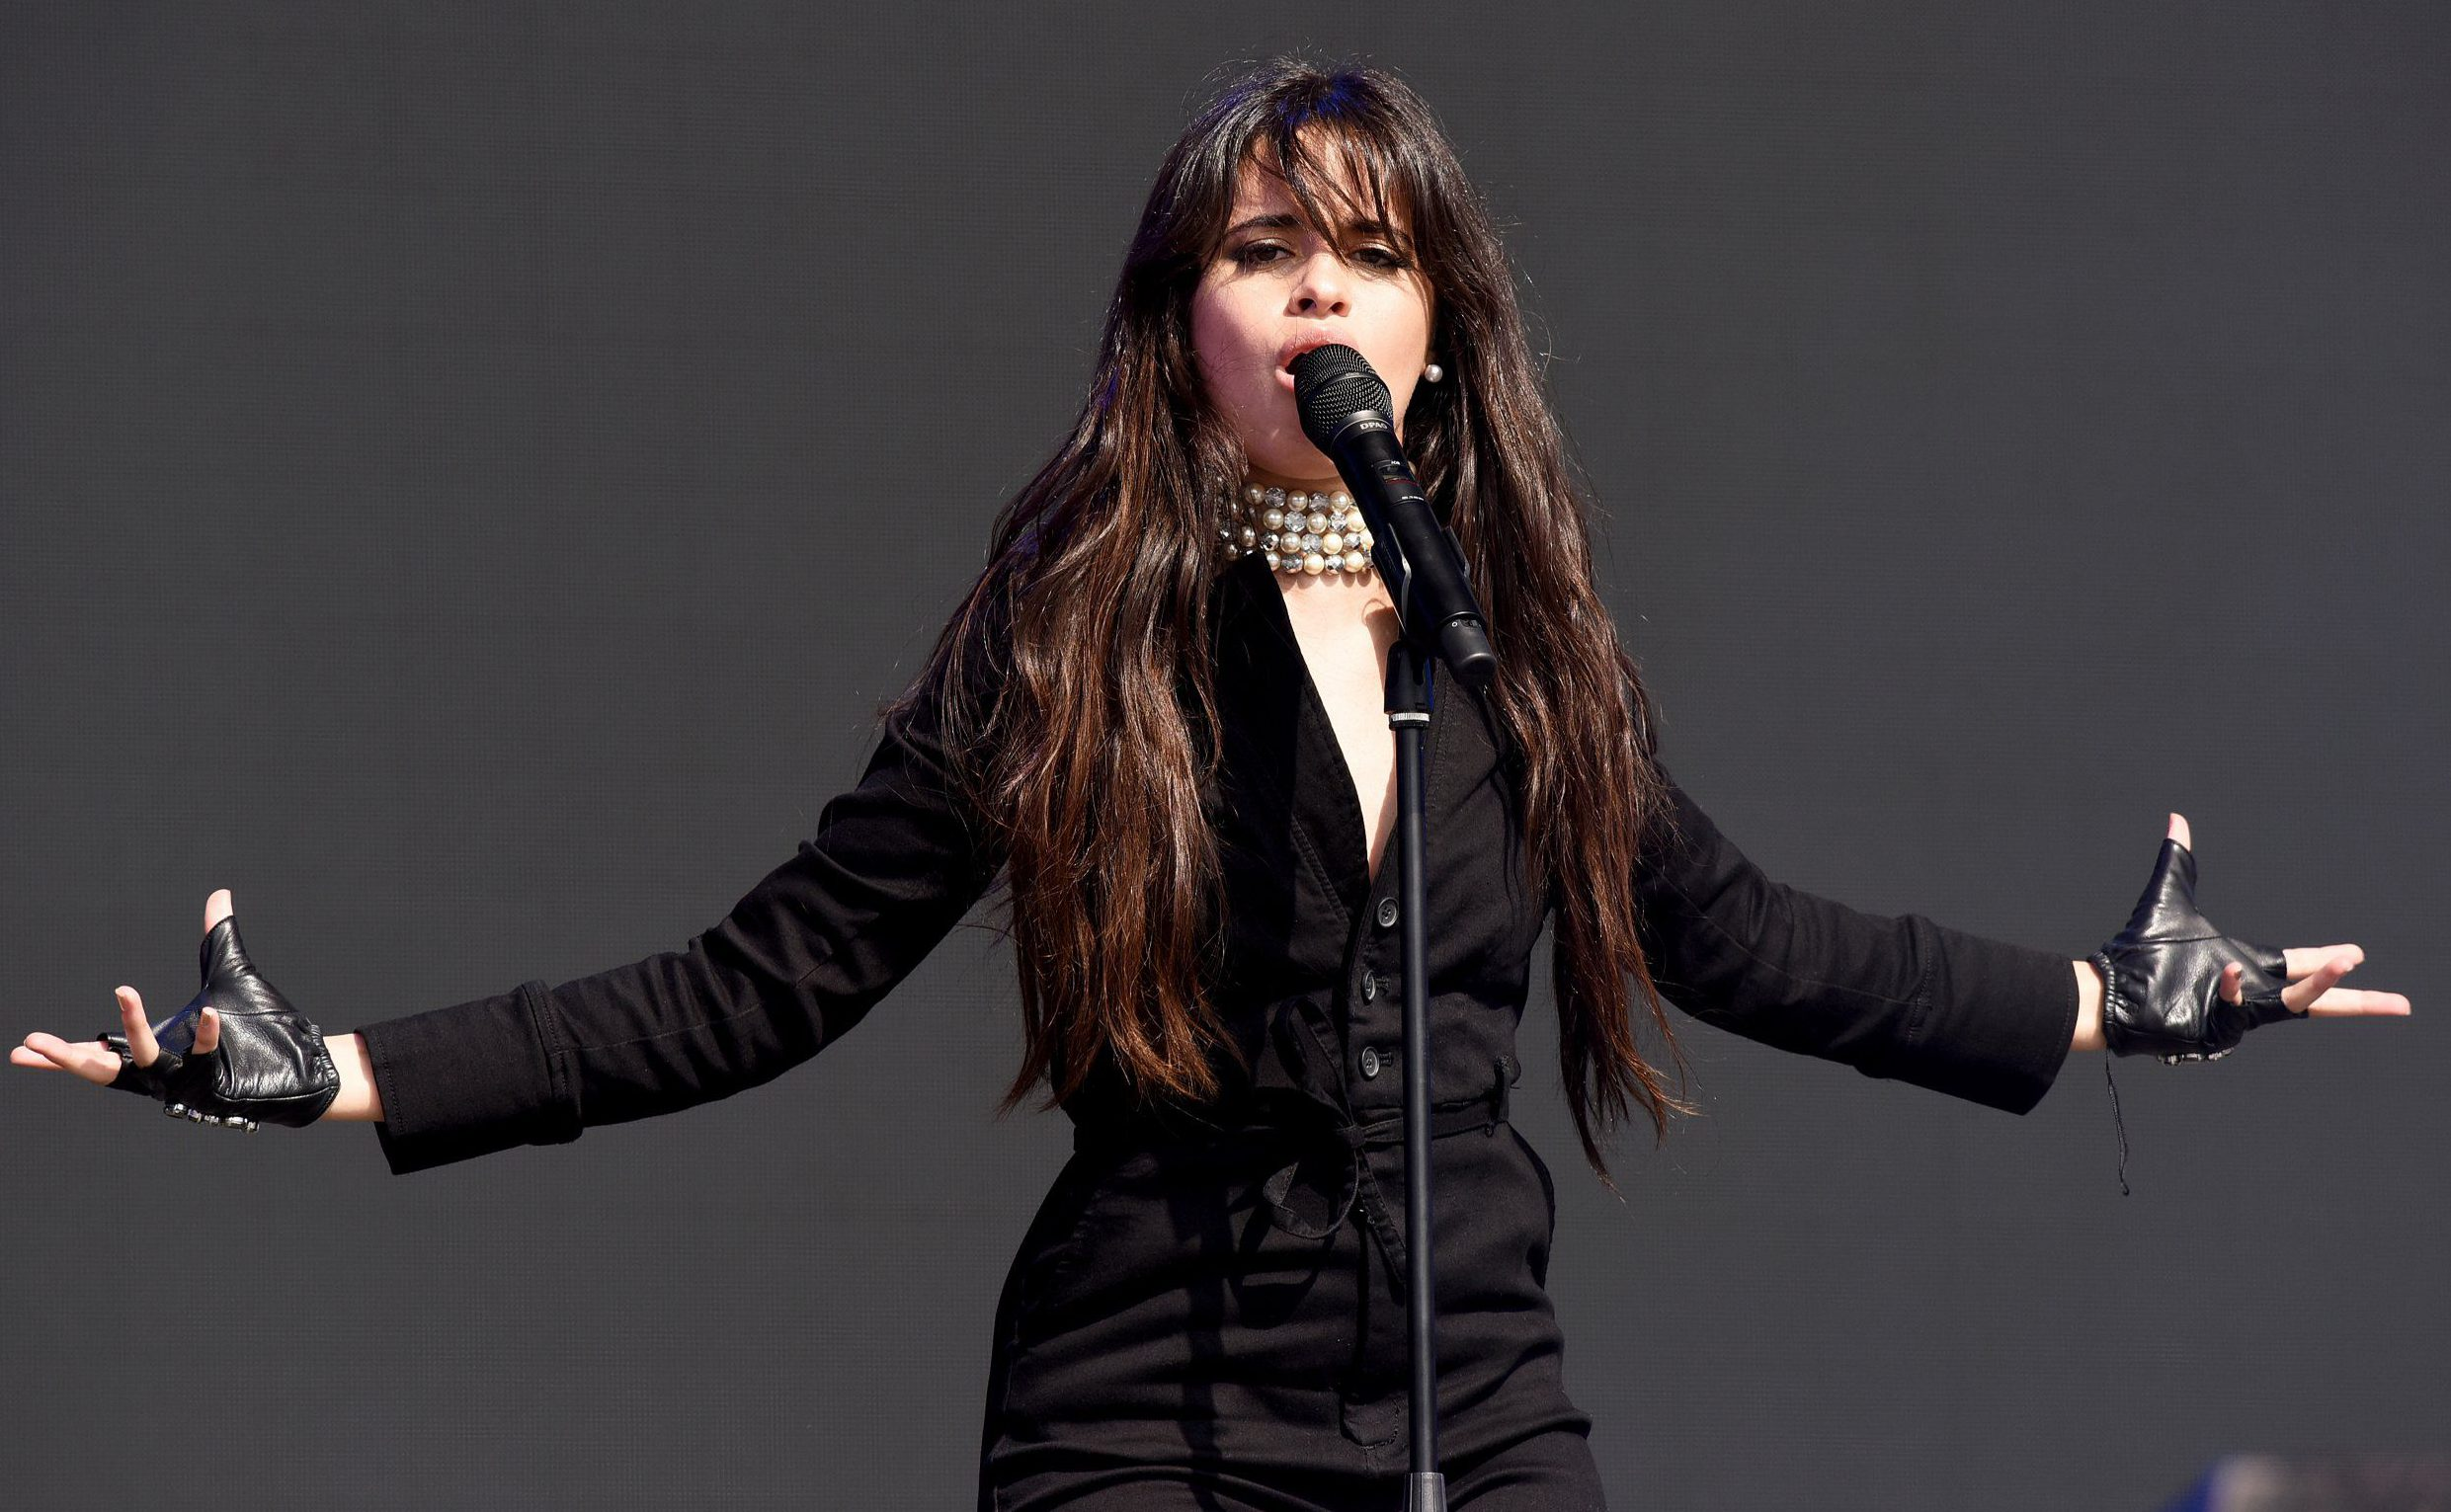 Camila Cabello has fans in tears as she sings Consequences at the Biggest Weekend